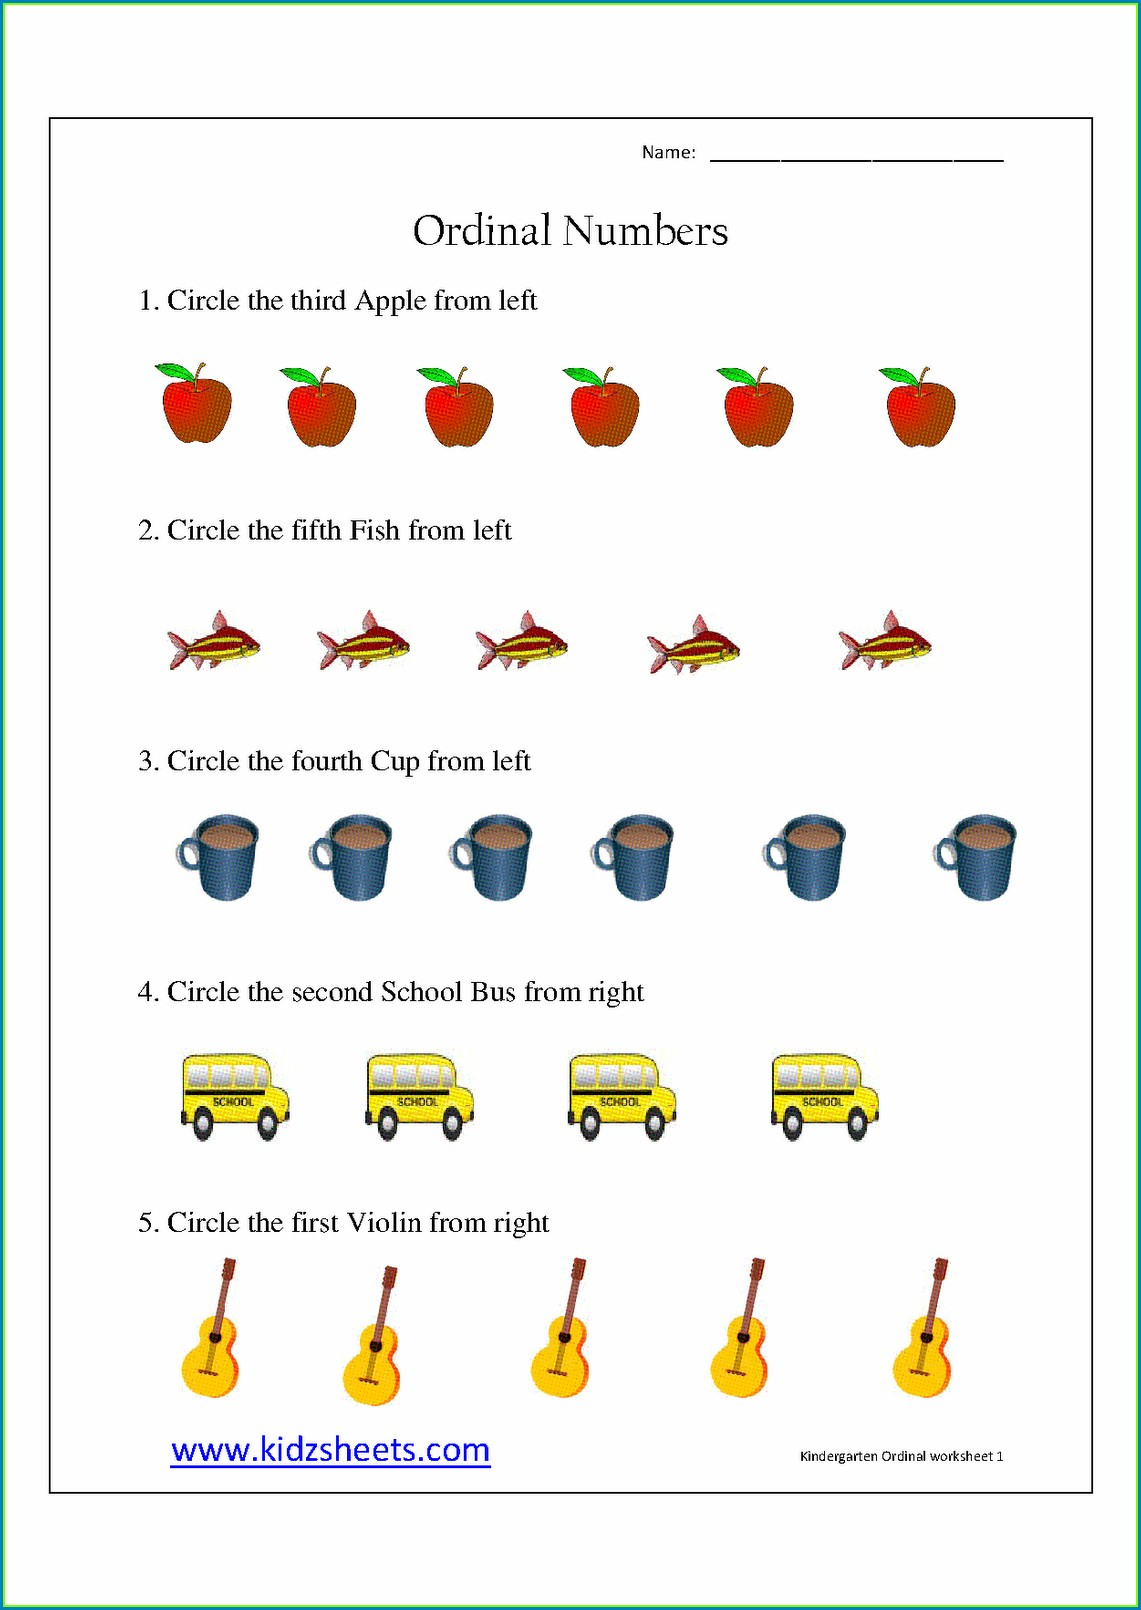 Preschool Ordinal Numbers Worksheet Kindergarten